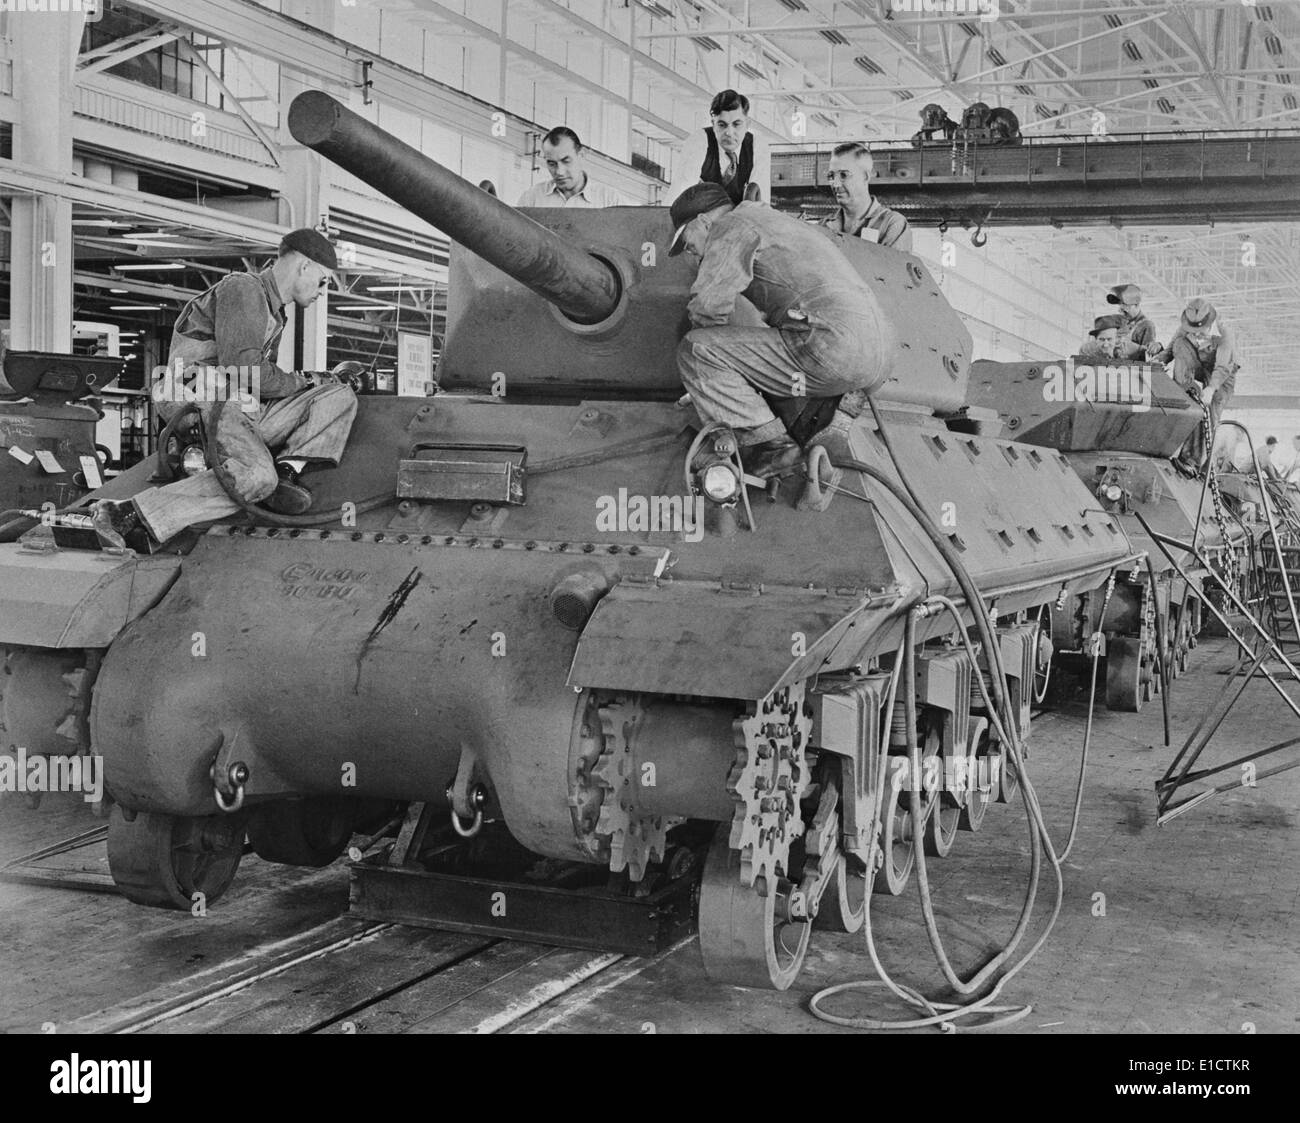 M-10 tanks in production on General Motors assembly line. American passenger cars were produced in very small numbers Stock Photo